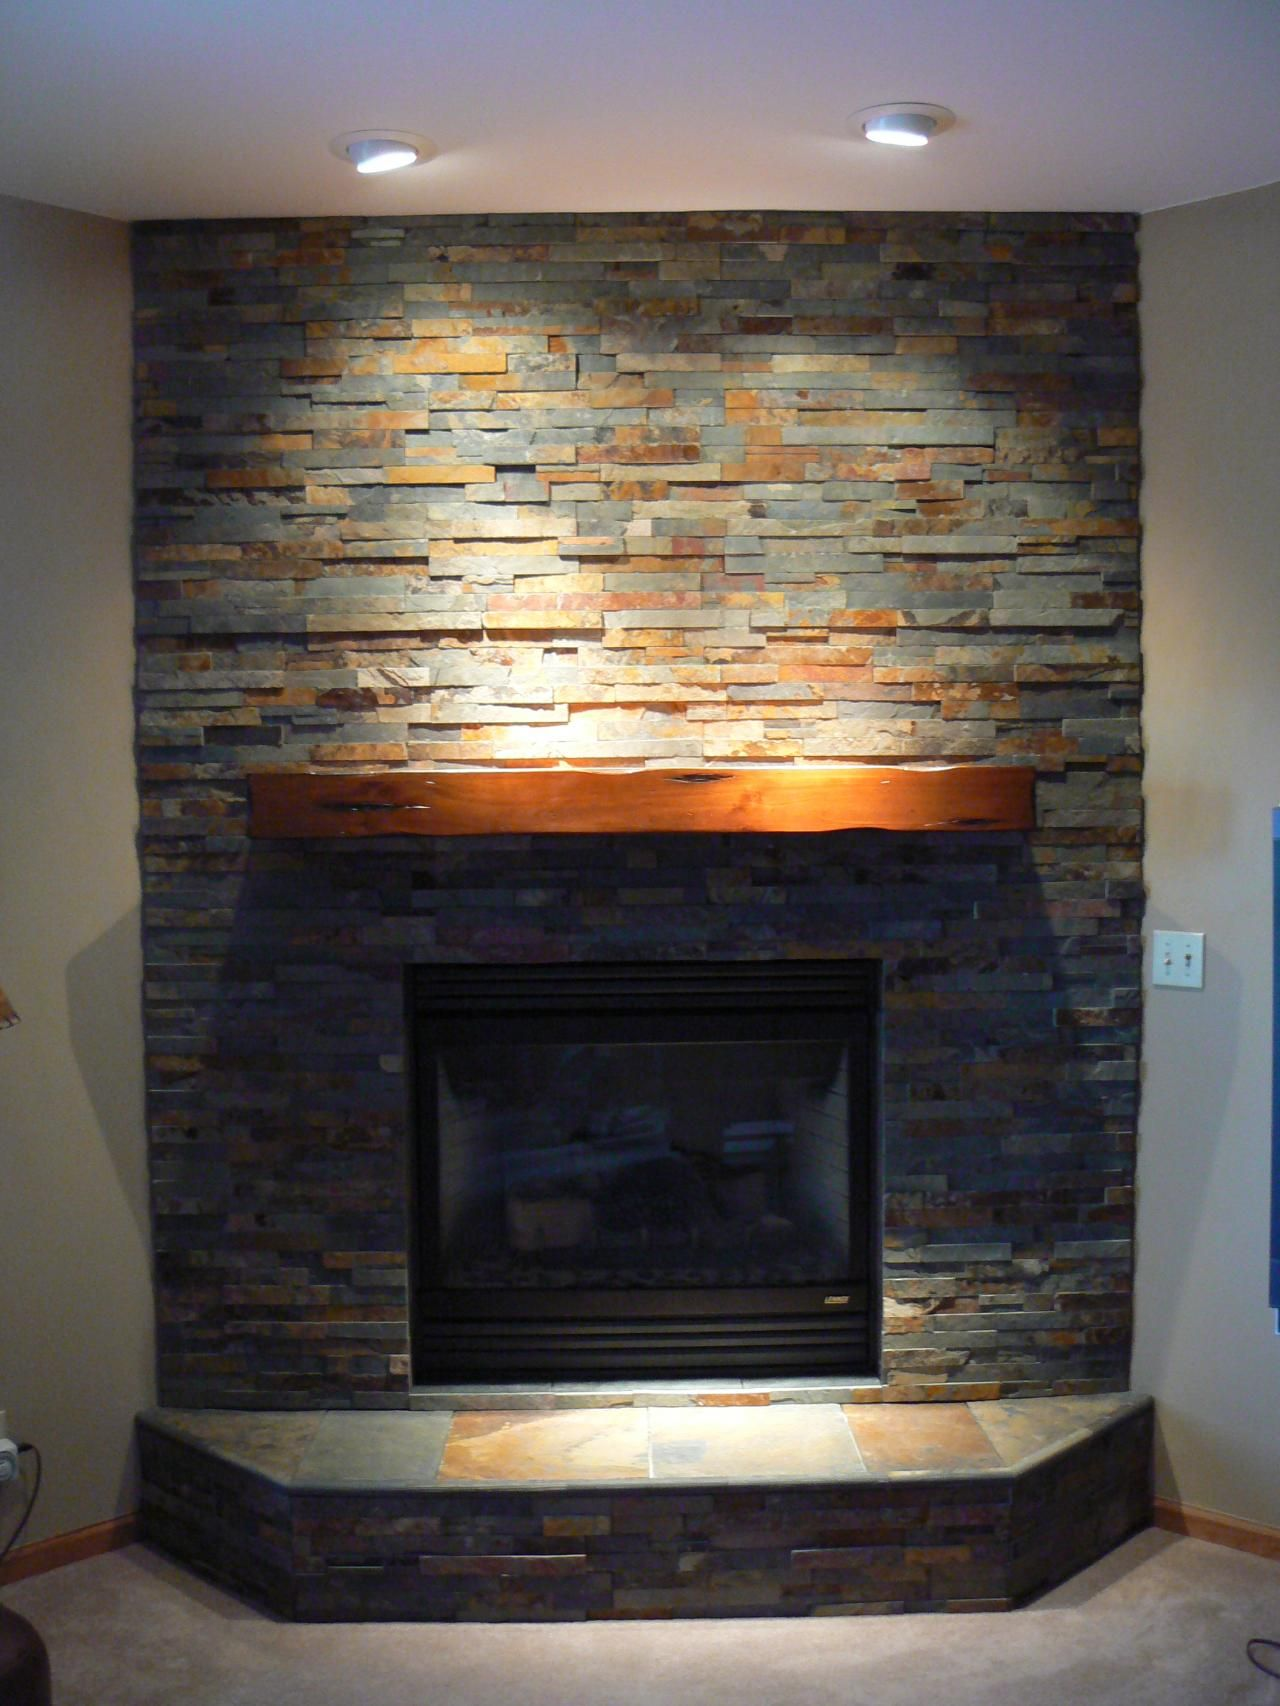 Gentil 37 A Lot Of Pictures Fireplace Tiles : A Finished Tiled Fireplace Surround.  A Finished Tiled Fireplace Surround.